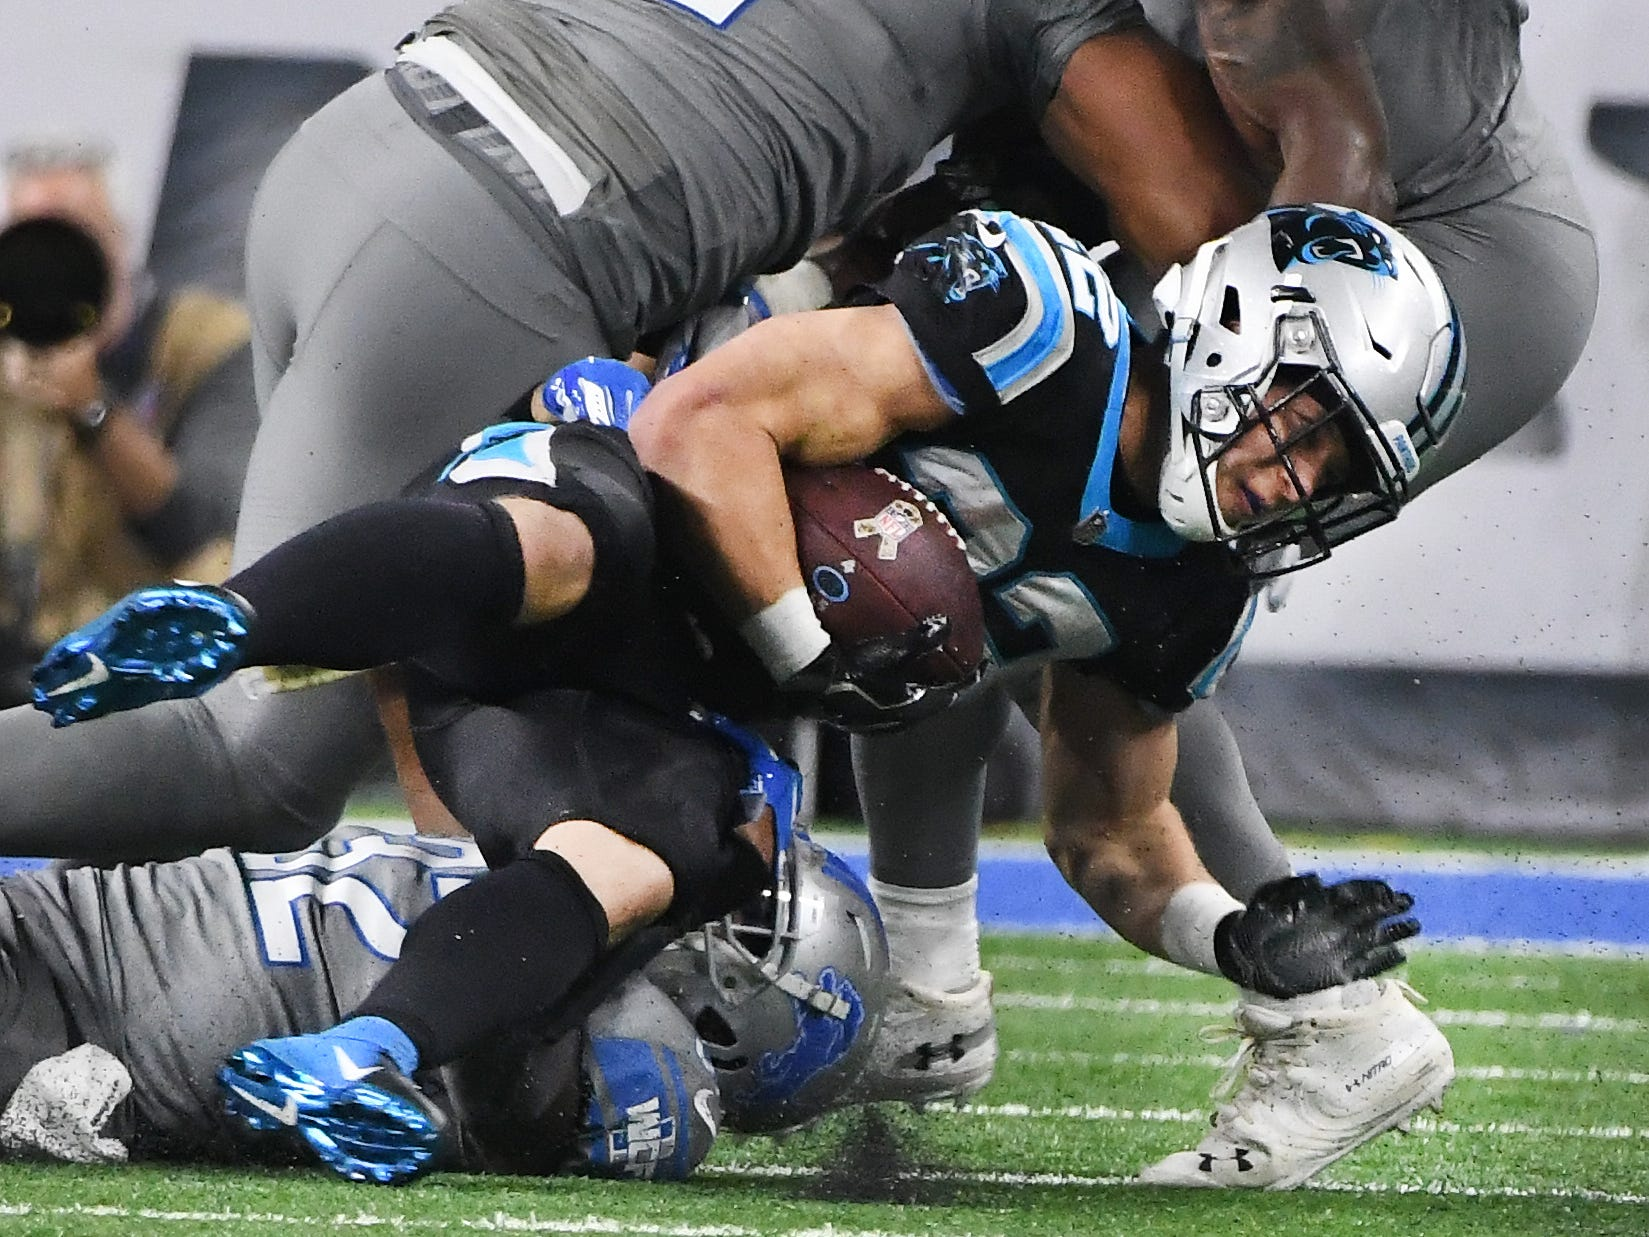 Lions defense including Tavon Wilson and Detroit's defense bring down Panthers running back Christian McCaffrey in the fourth quarter.